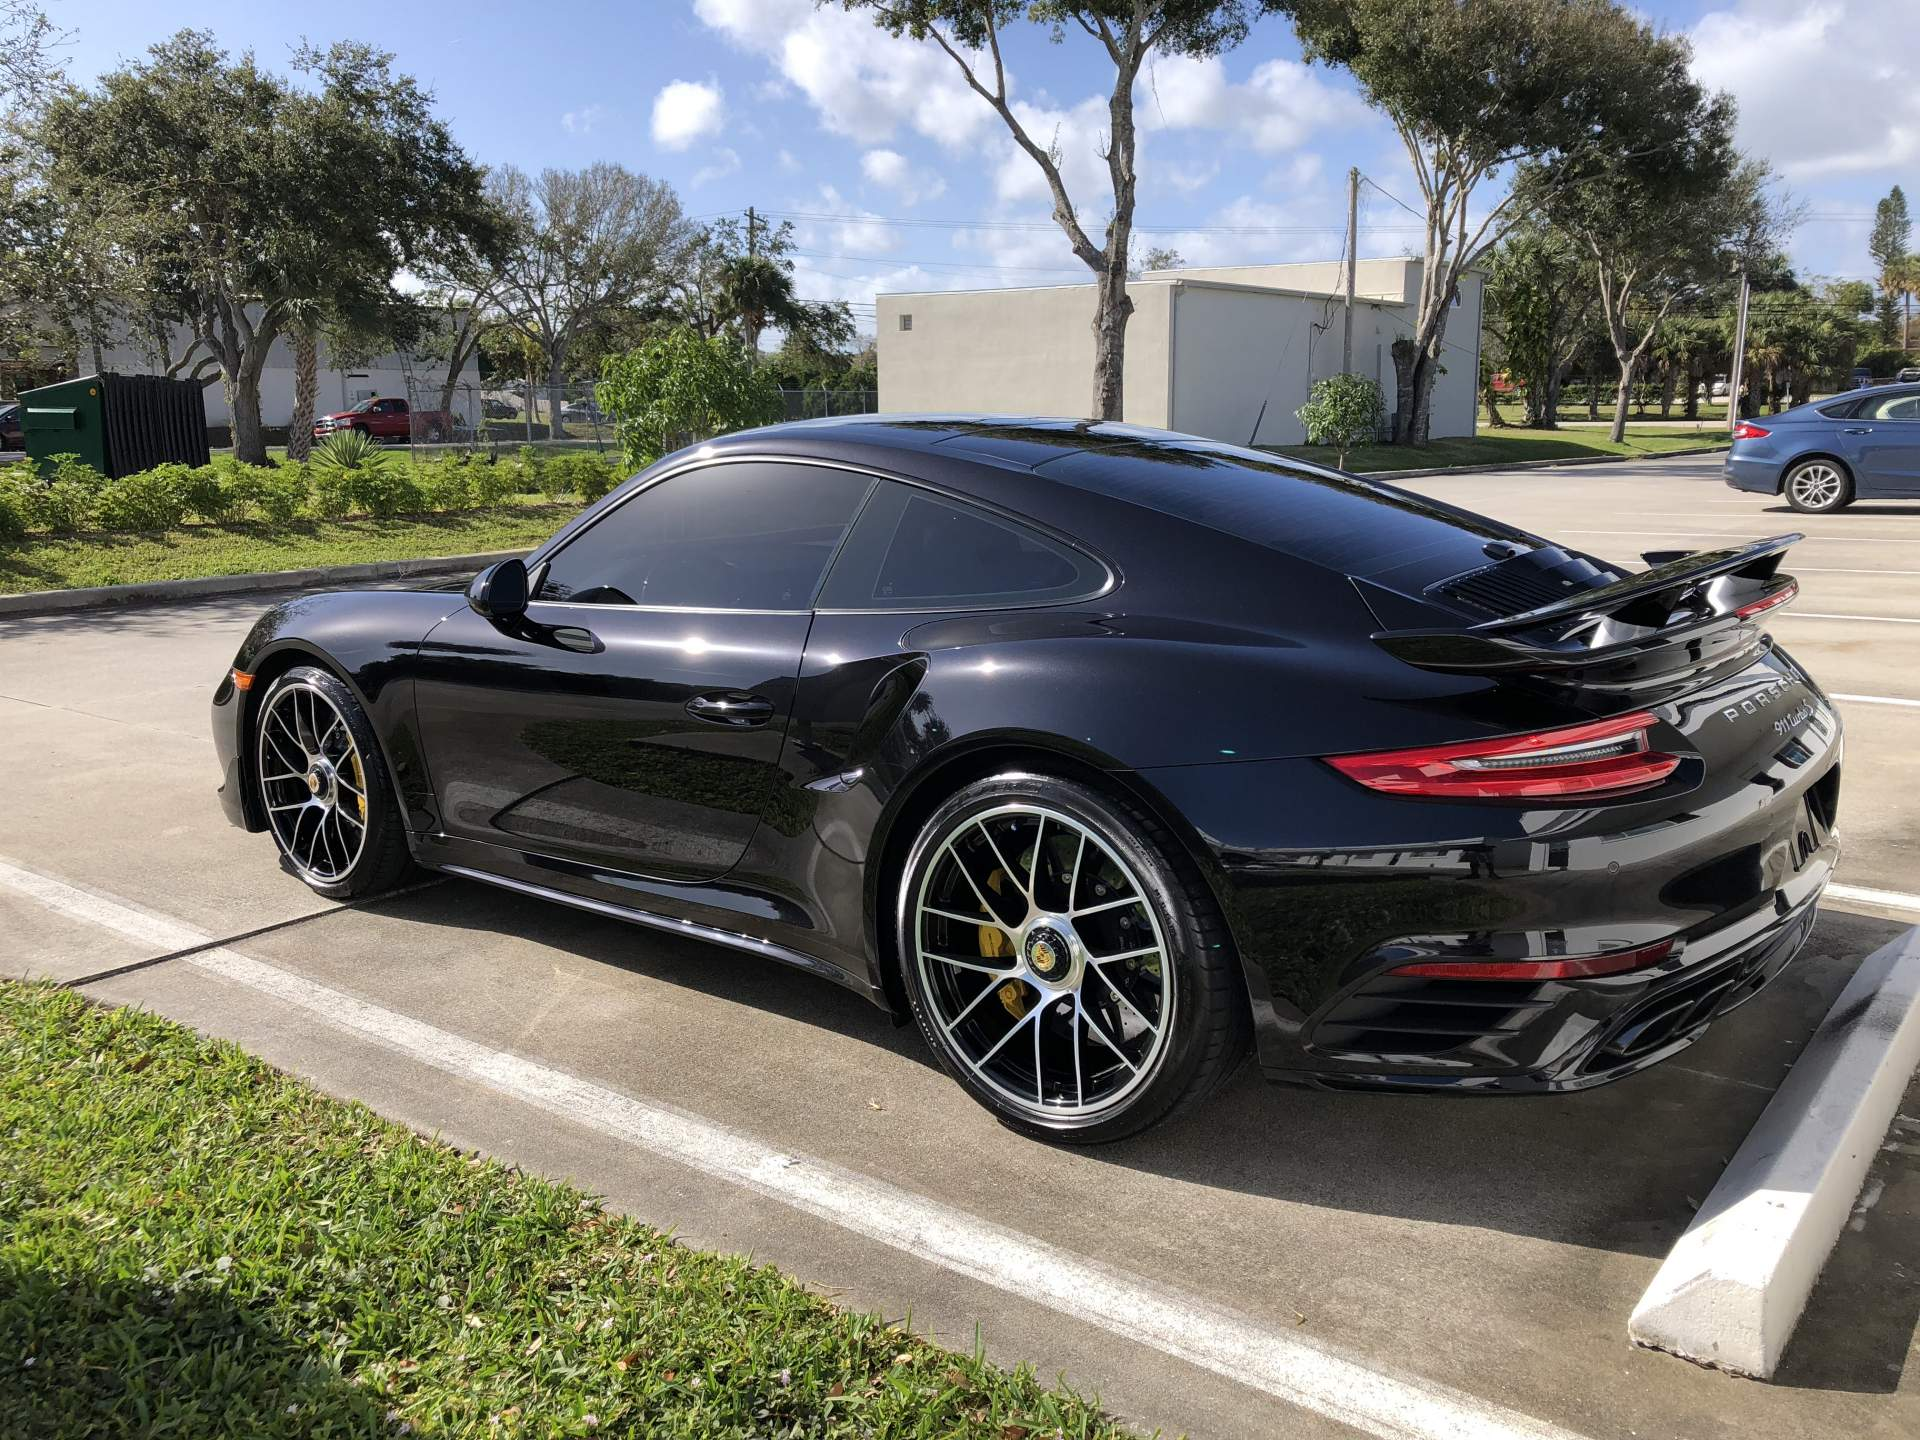 Black Porsche from the side